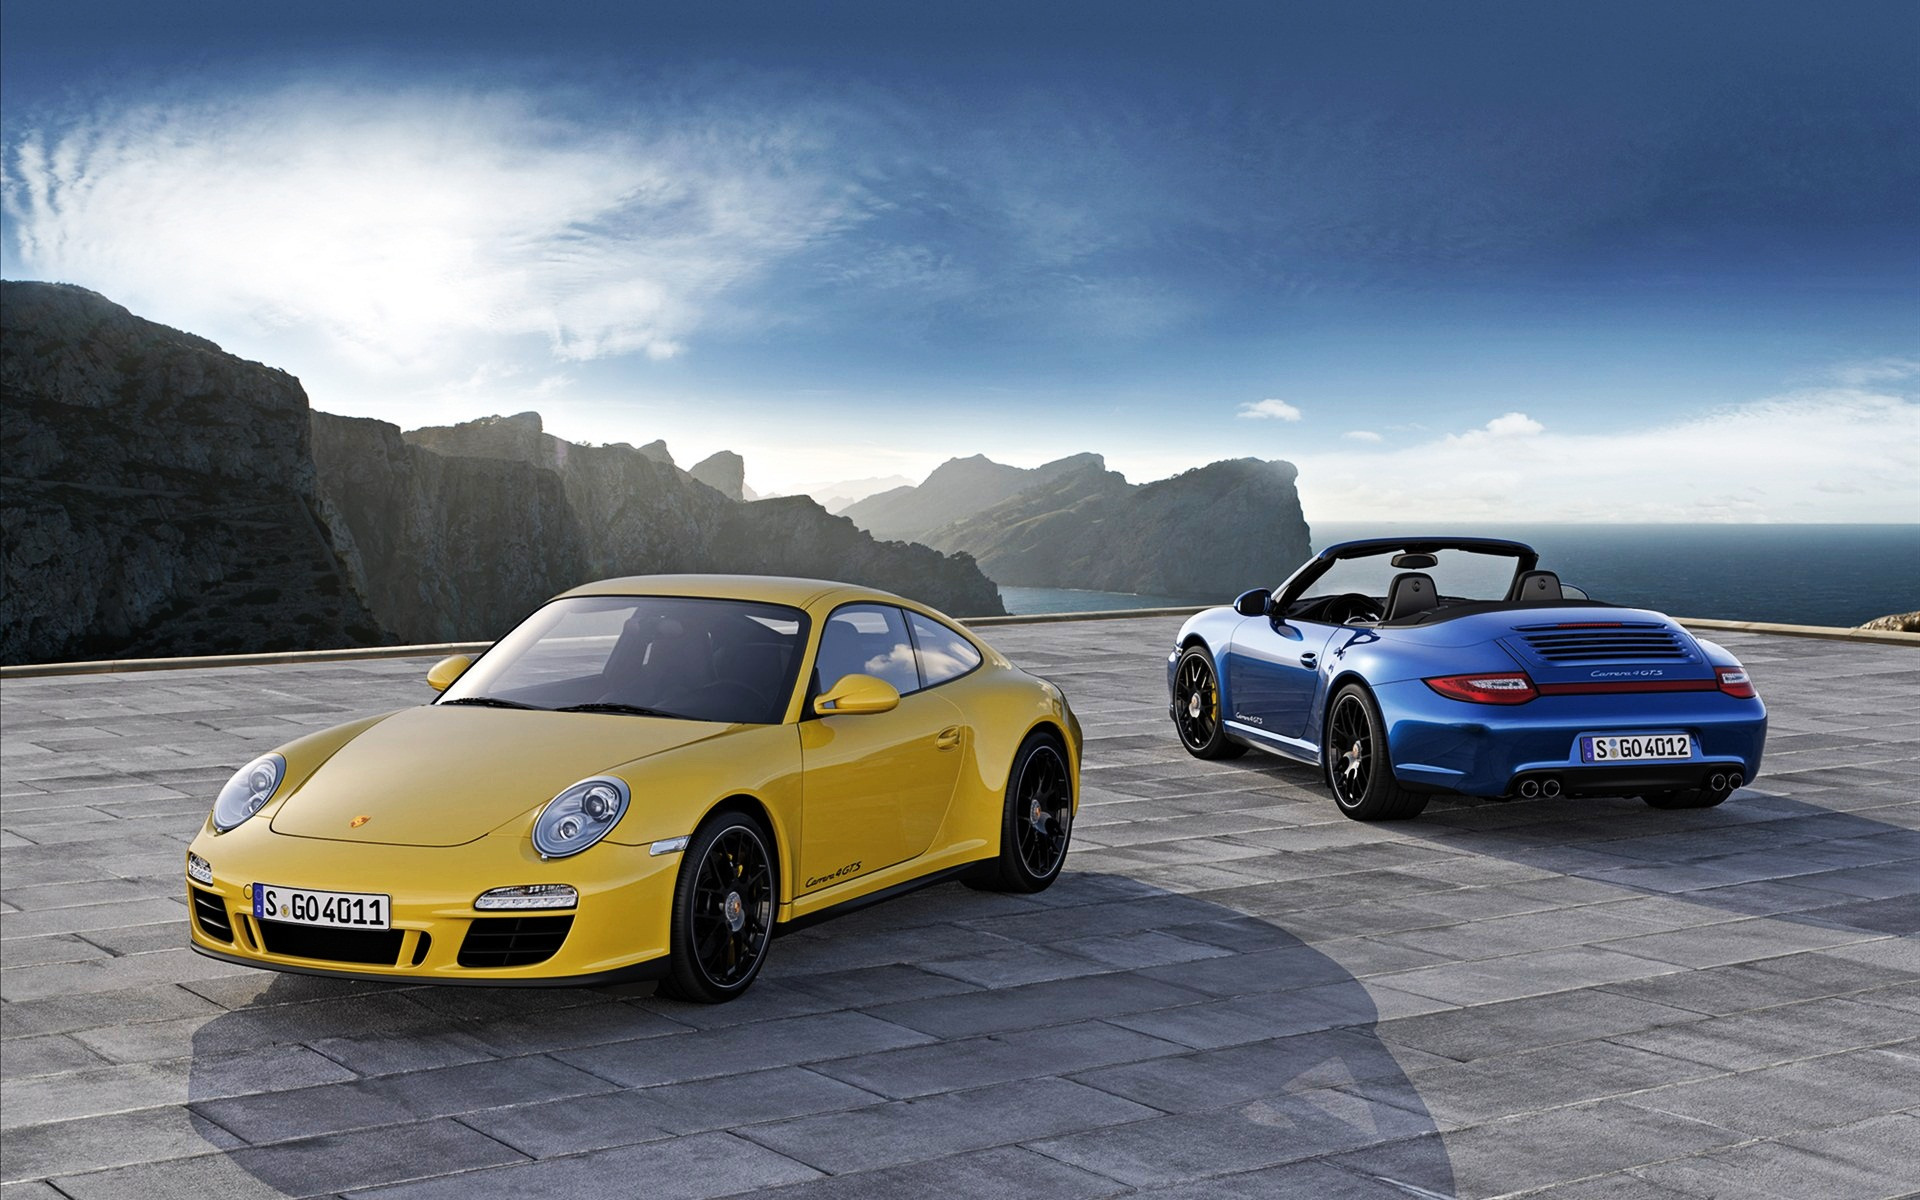 2012 Porsche 911 Carrera 4 GTS Wallpapers HD Wallpapers 1920x1200